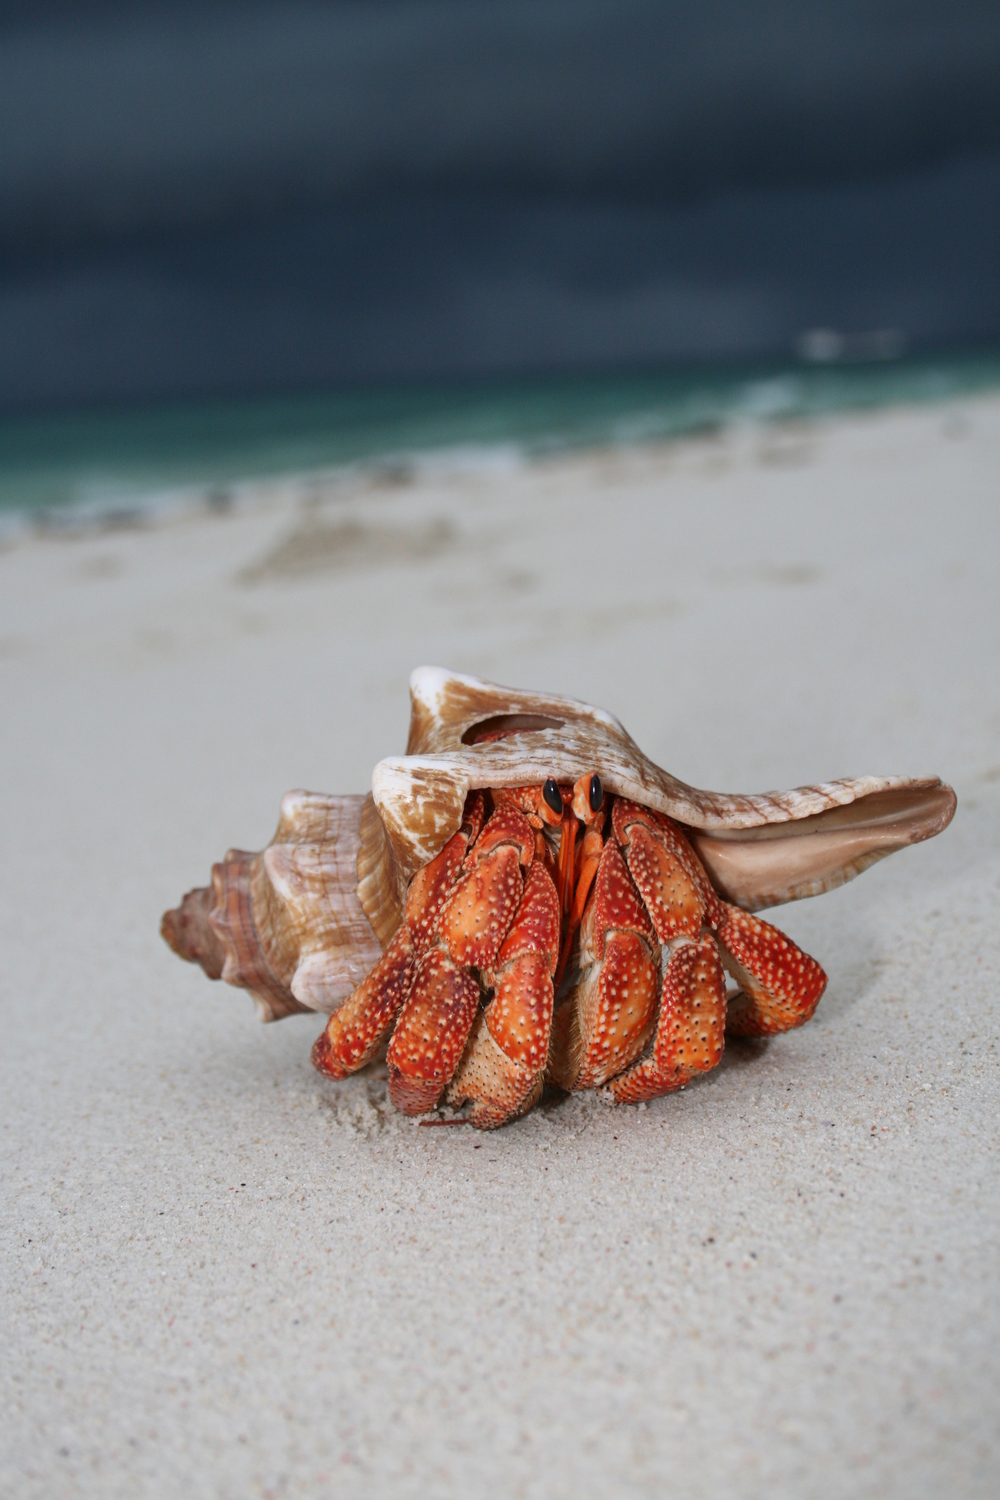 Hermit_crab_on_the_beach.jpg